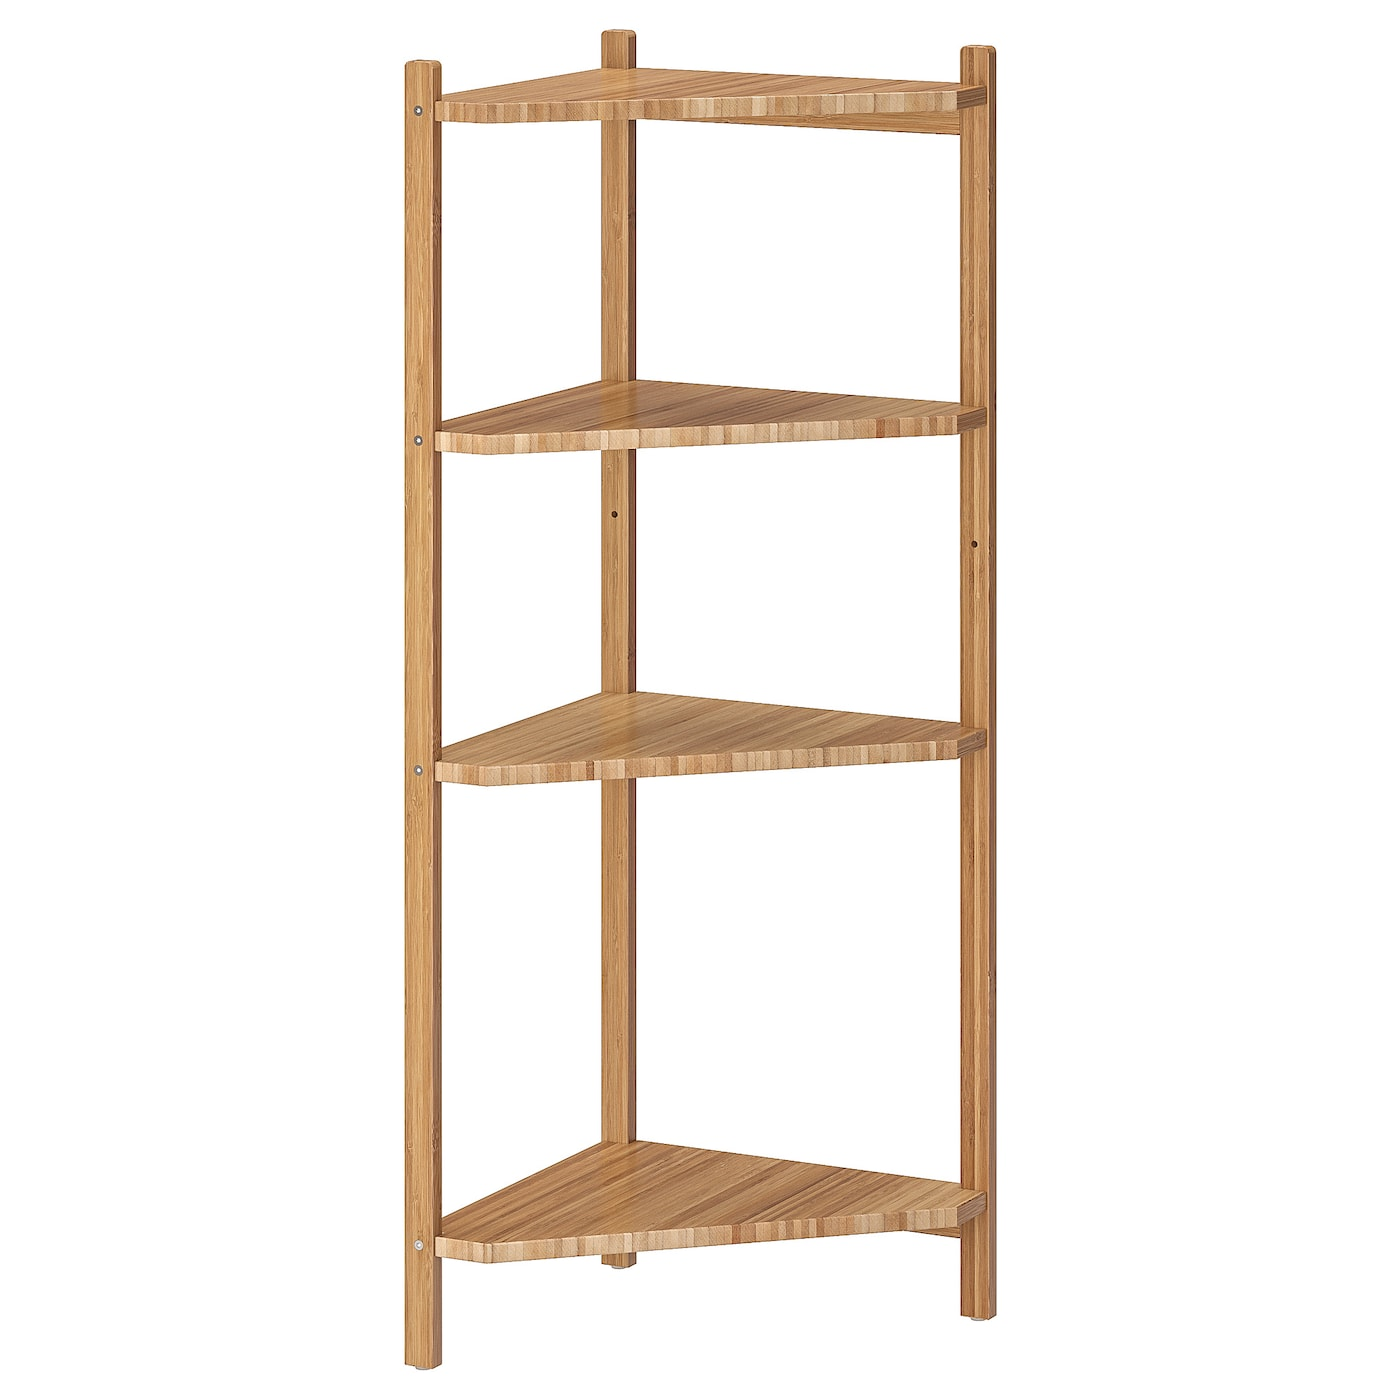 RÅGRUND Corner shelf unit - bamboo 7x7 cm